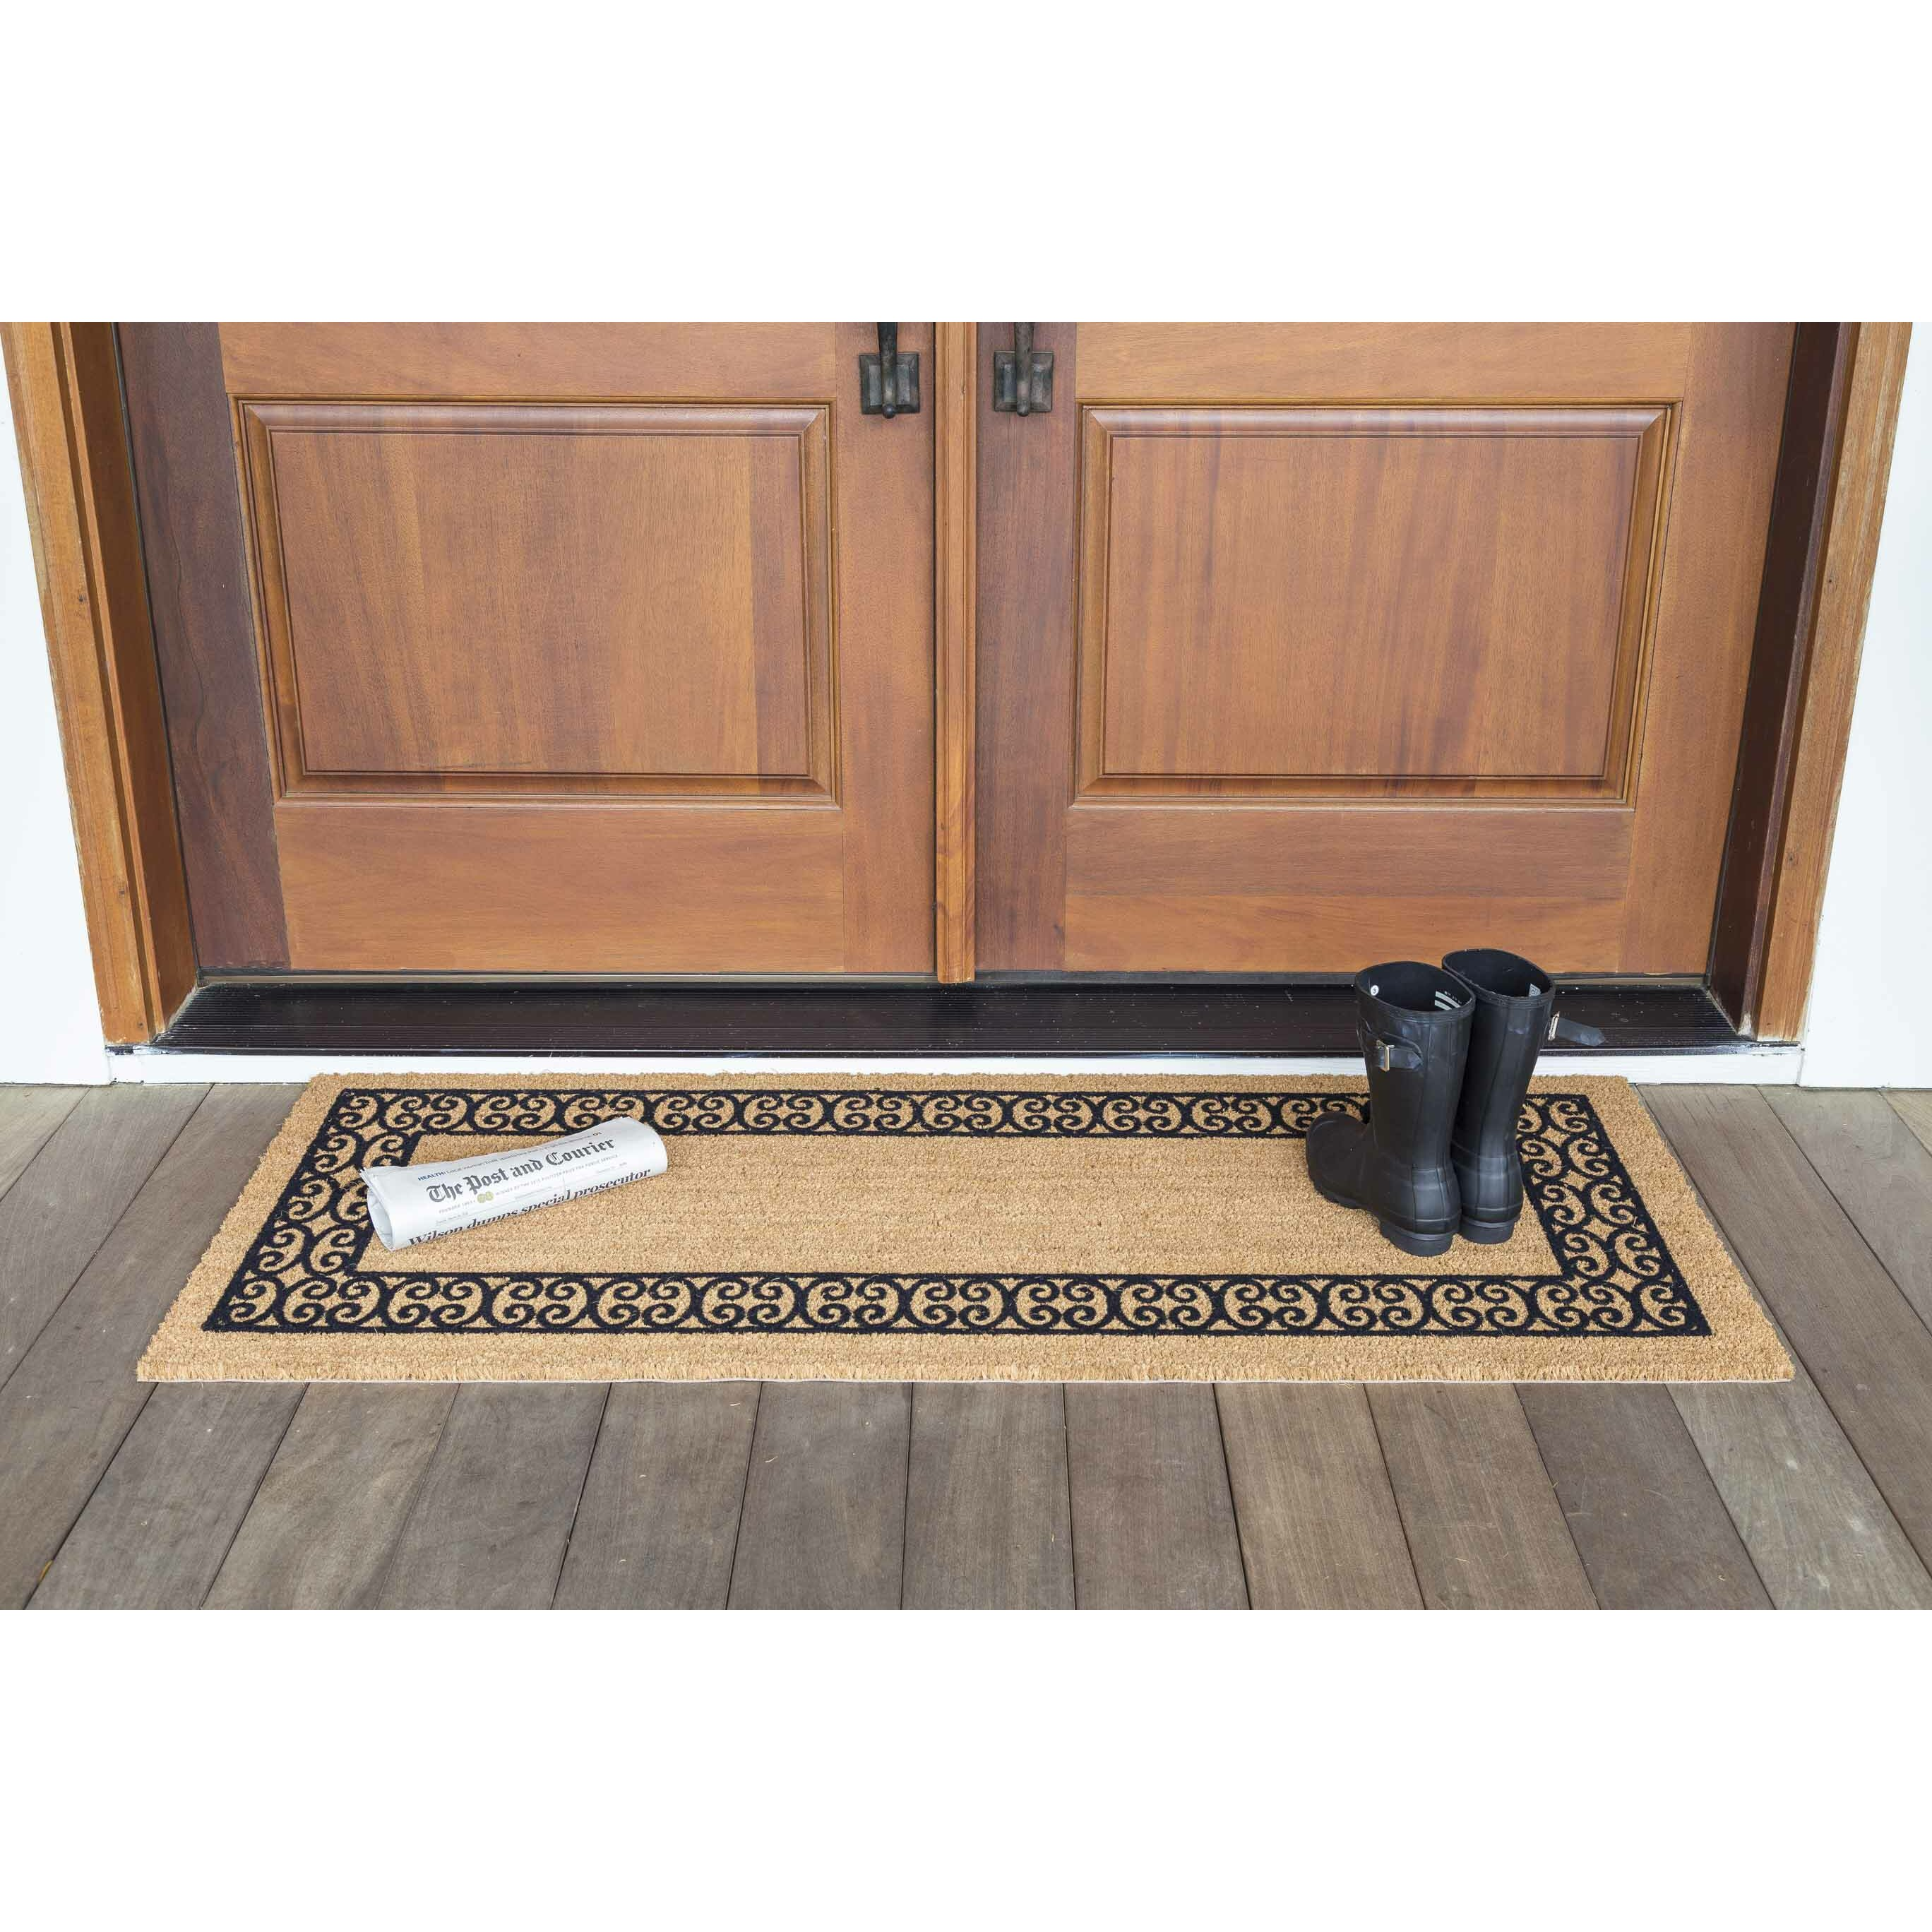 us cocoa mat decoir charleston border double door doormat reviews wayfair. Black Bedroom Furniture Sets. Home Design Ideas